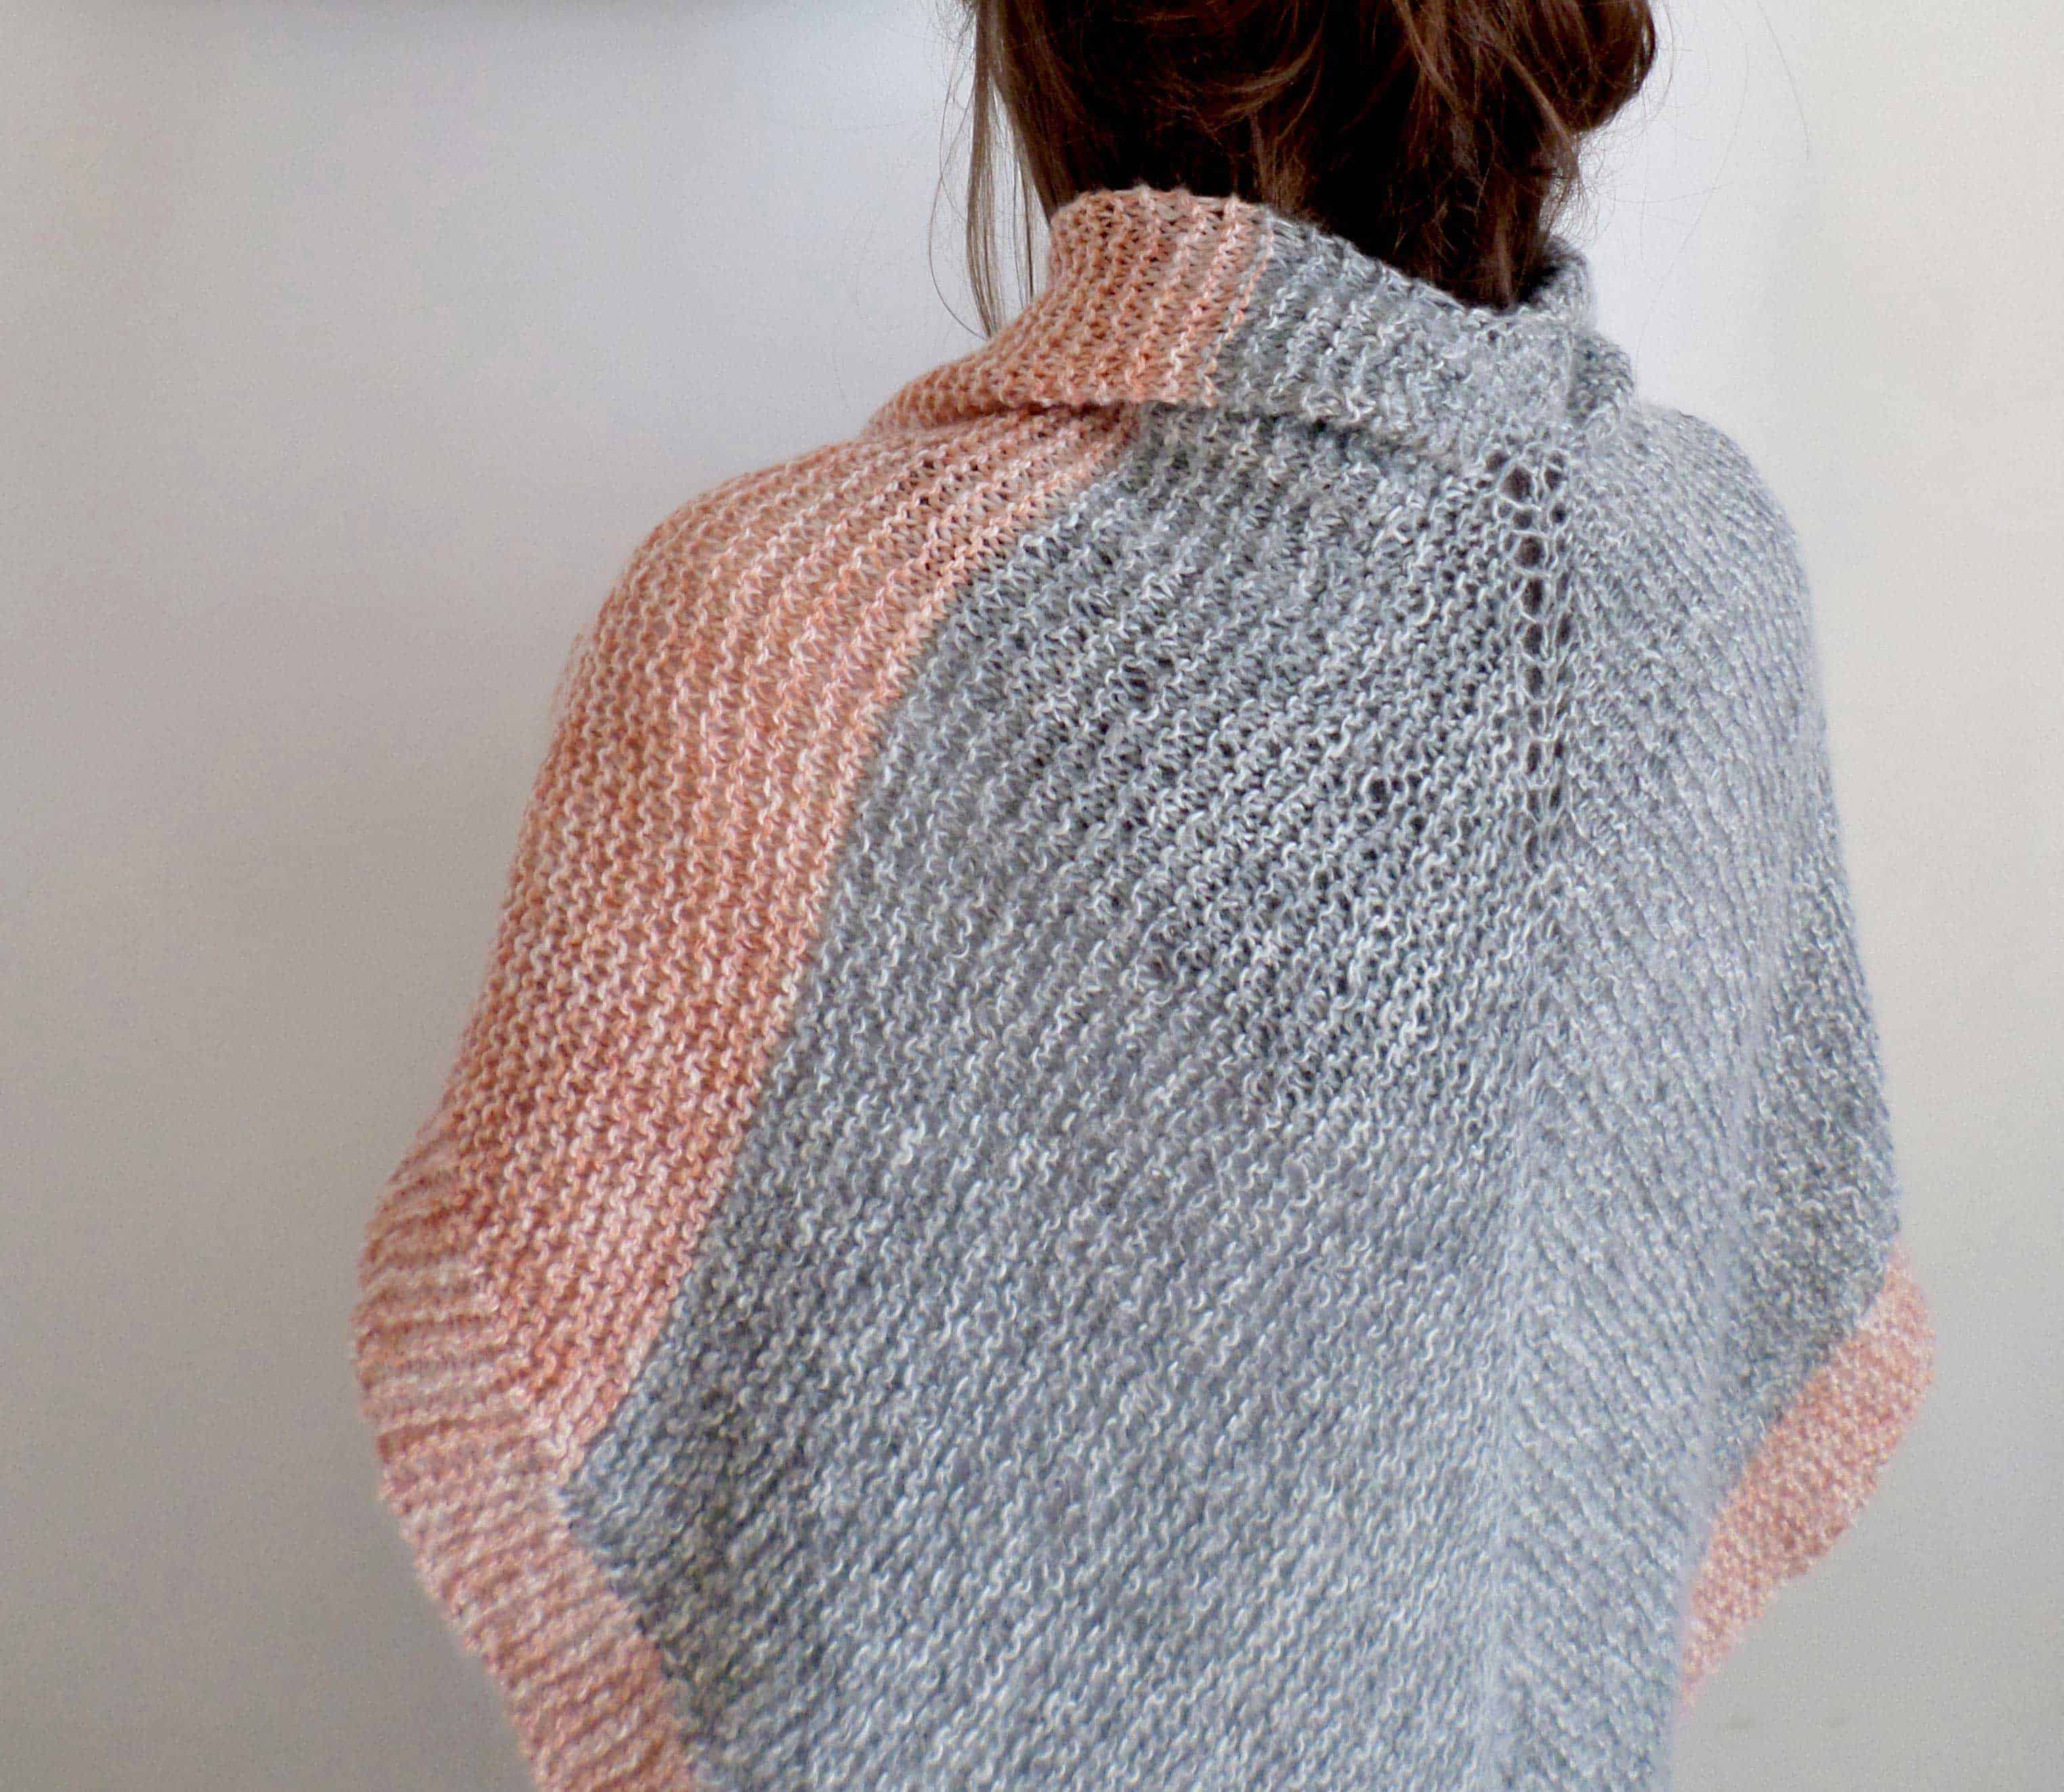 The Mineral Shawl Knit Kit